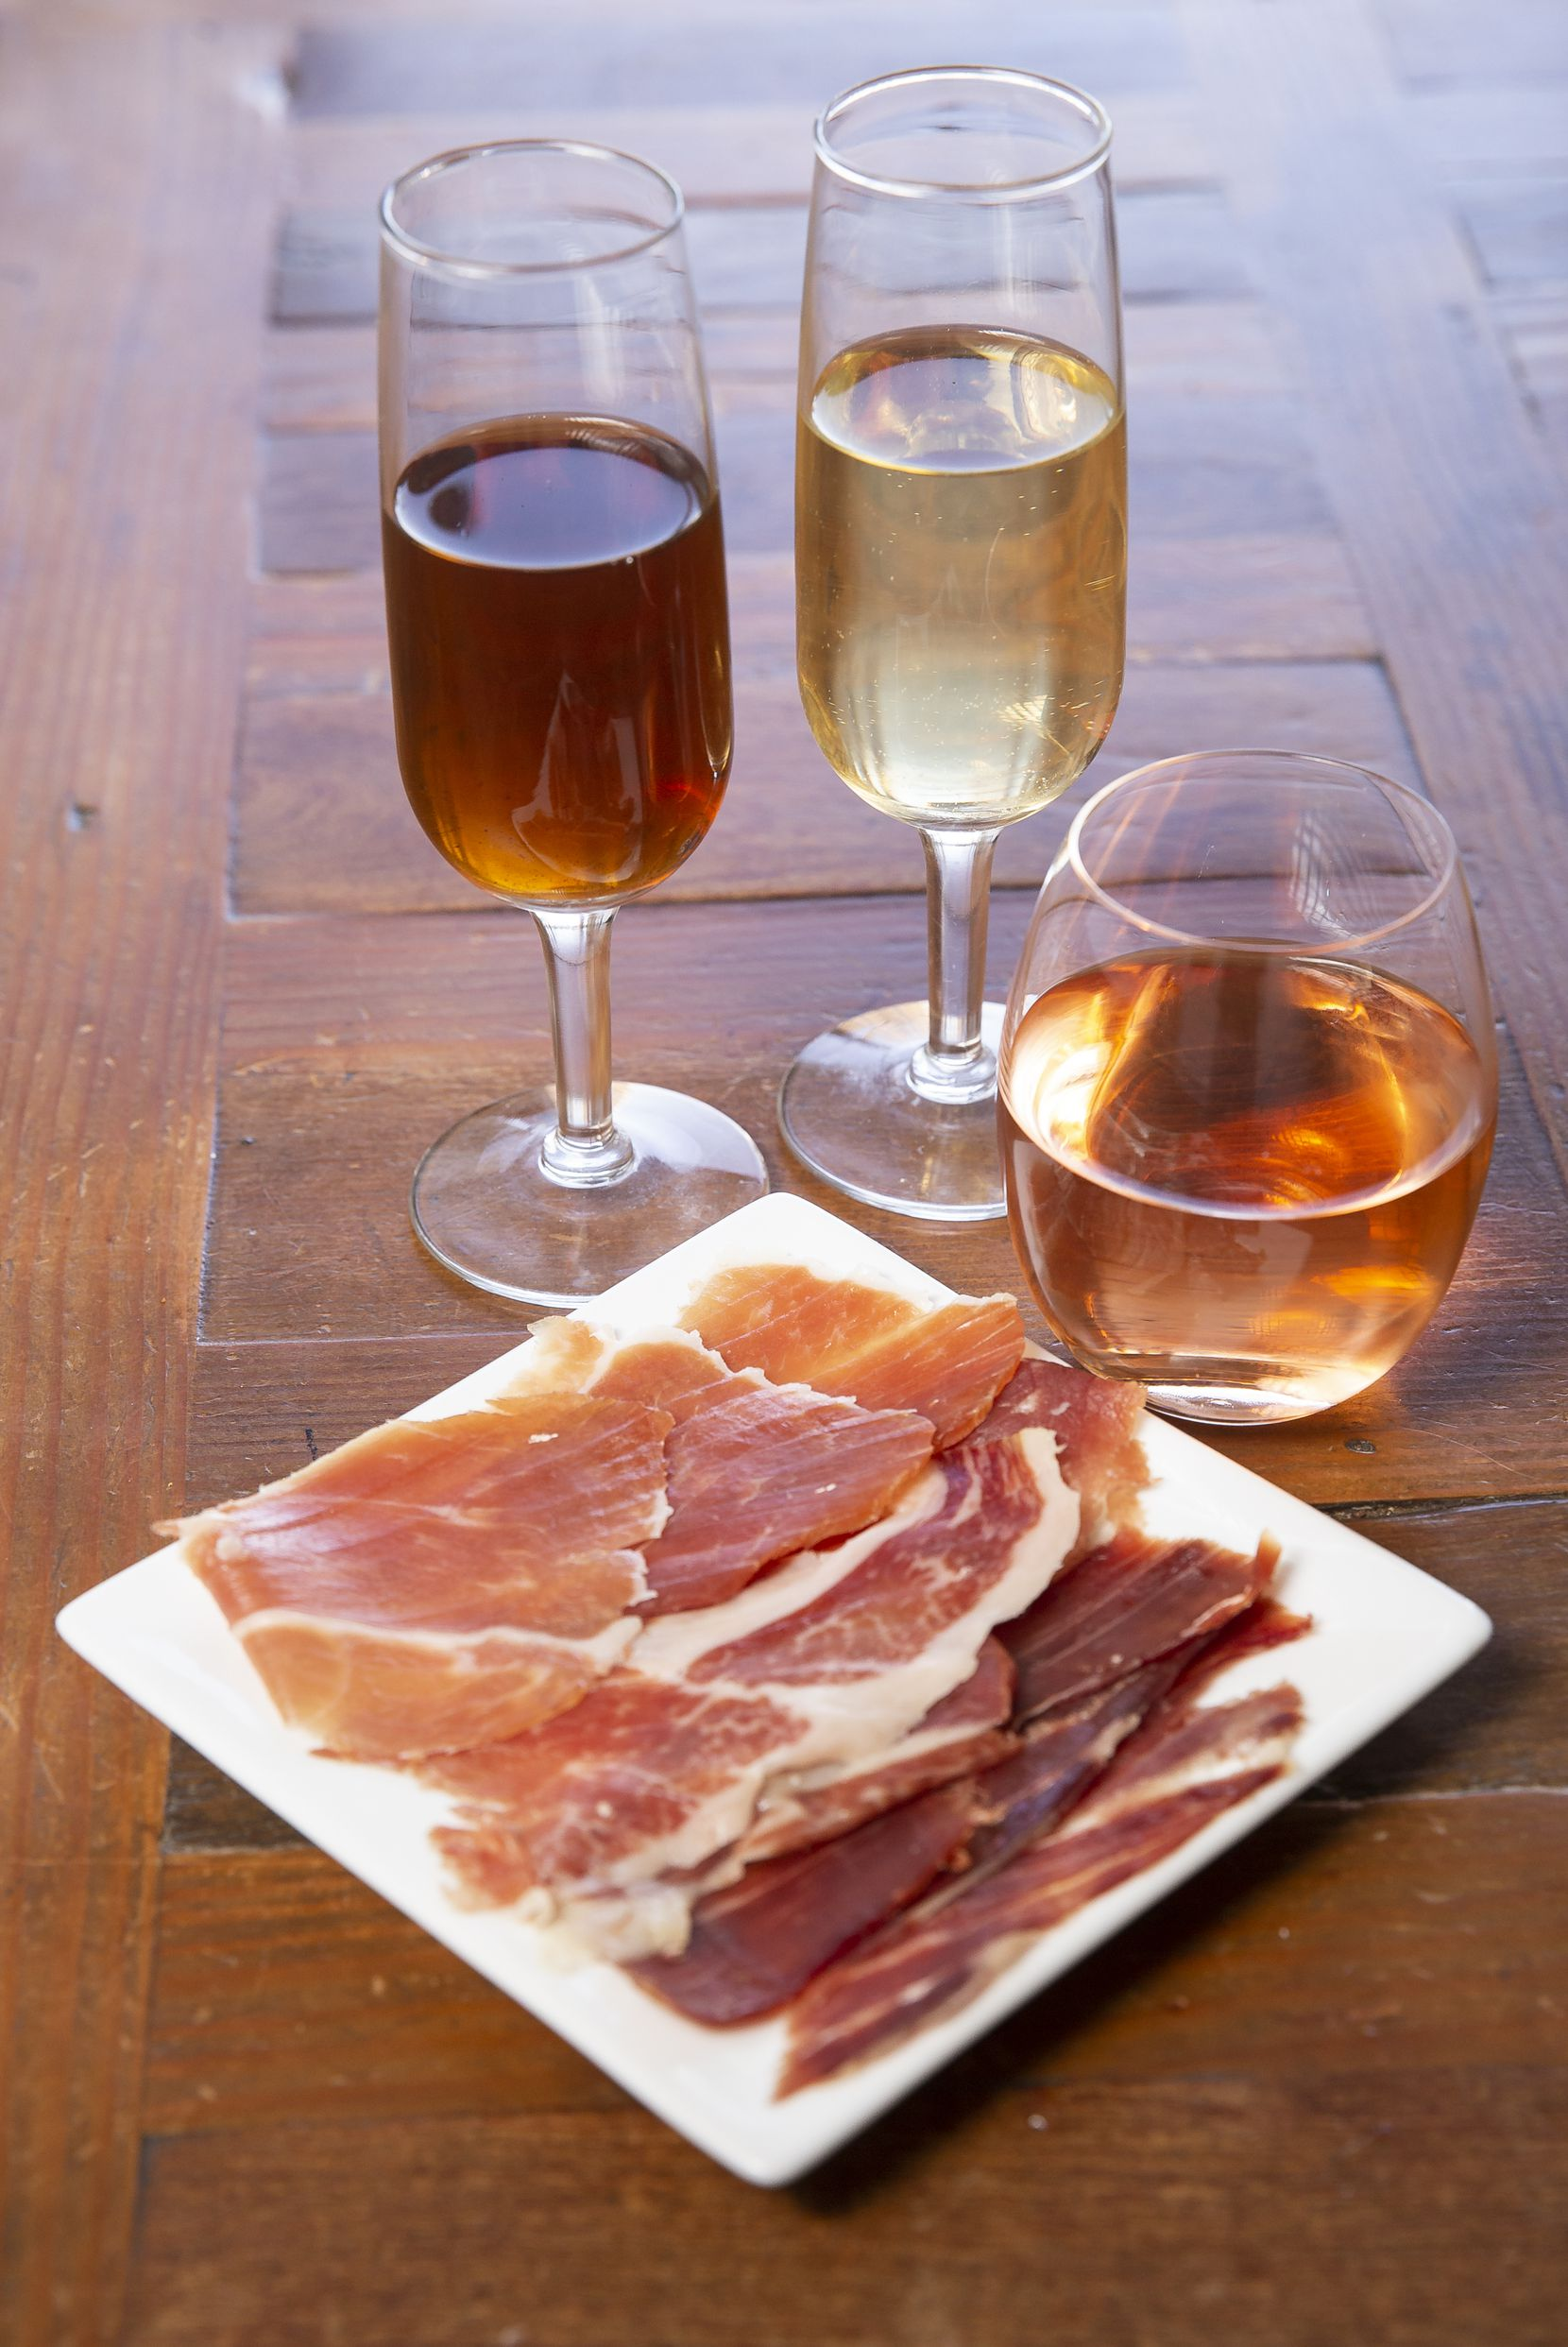 The Dallas Morning News Wine Panel tasted various wines to go with jamón ibérico from Enrique Tomas.